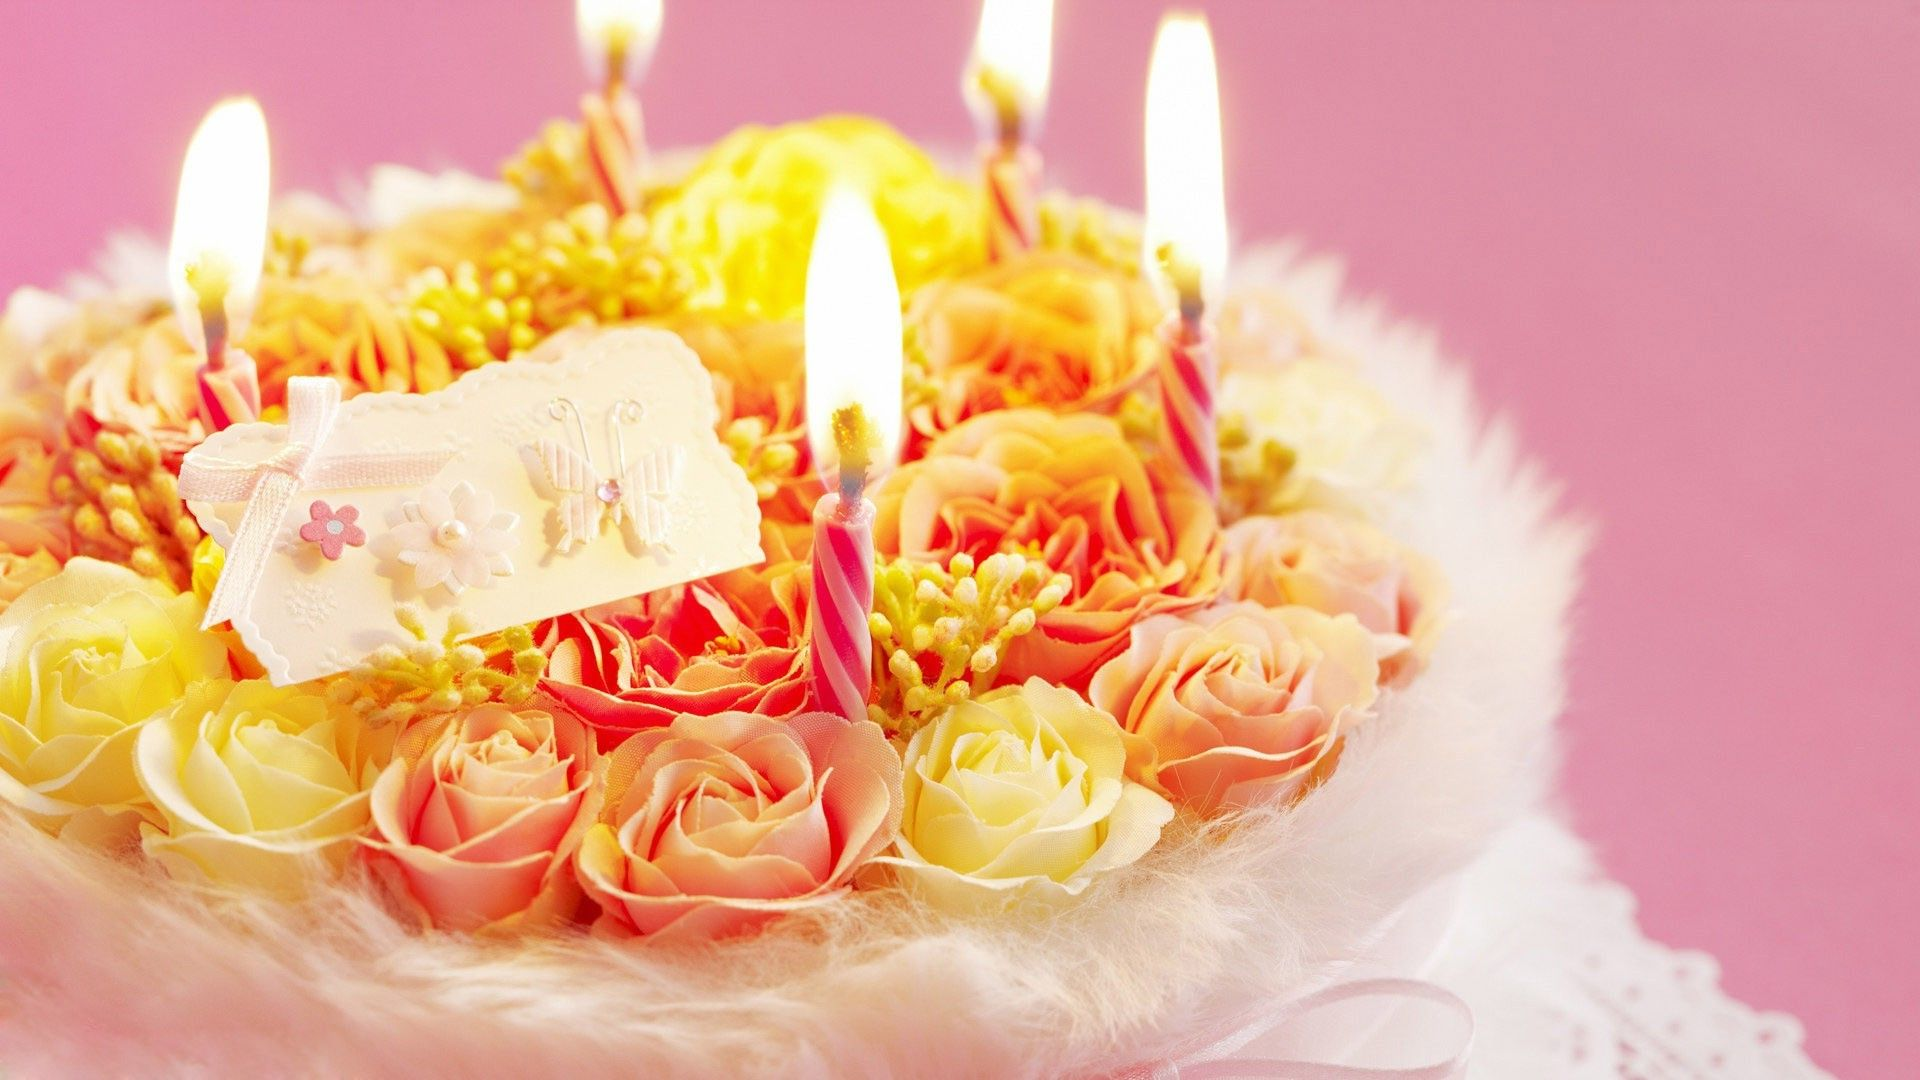 Birthday Flowers Cake Full Hd Large Wallpapers E1457881306118 Jpg 1920 1080 Backgrounds Pinterest Widescreen Wallpaper And